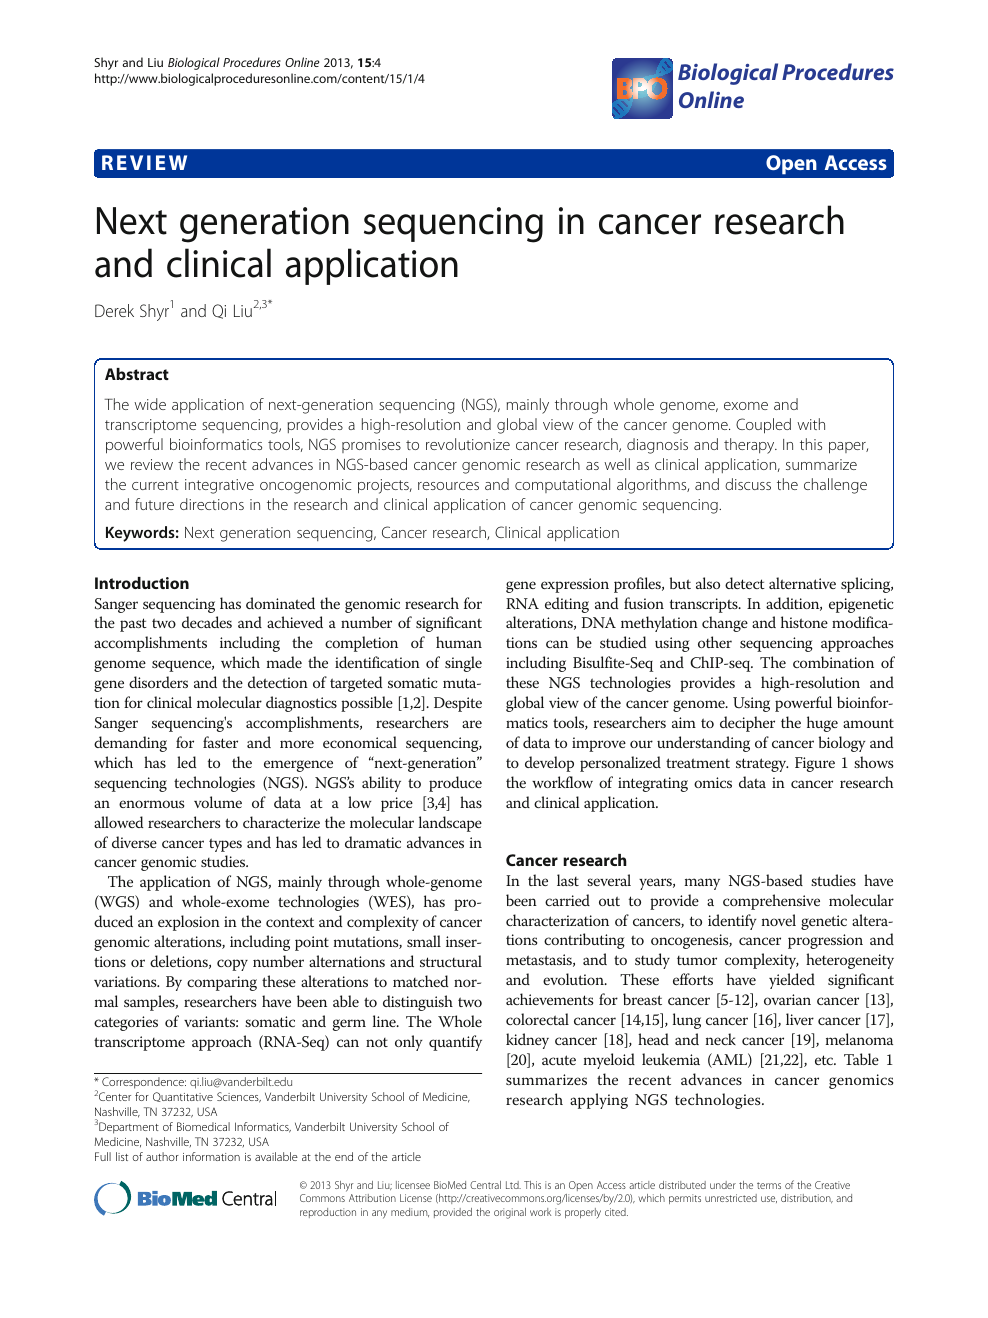 010 Research Paper Cancer Topics Marvelous Breast Ideas Ovarian Full